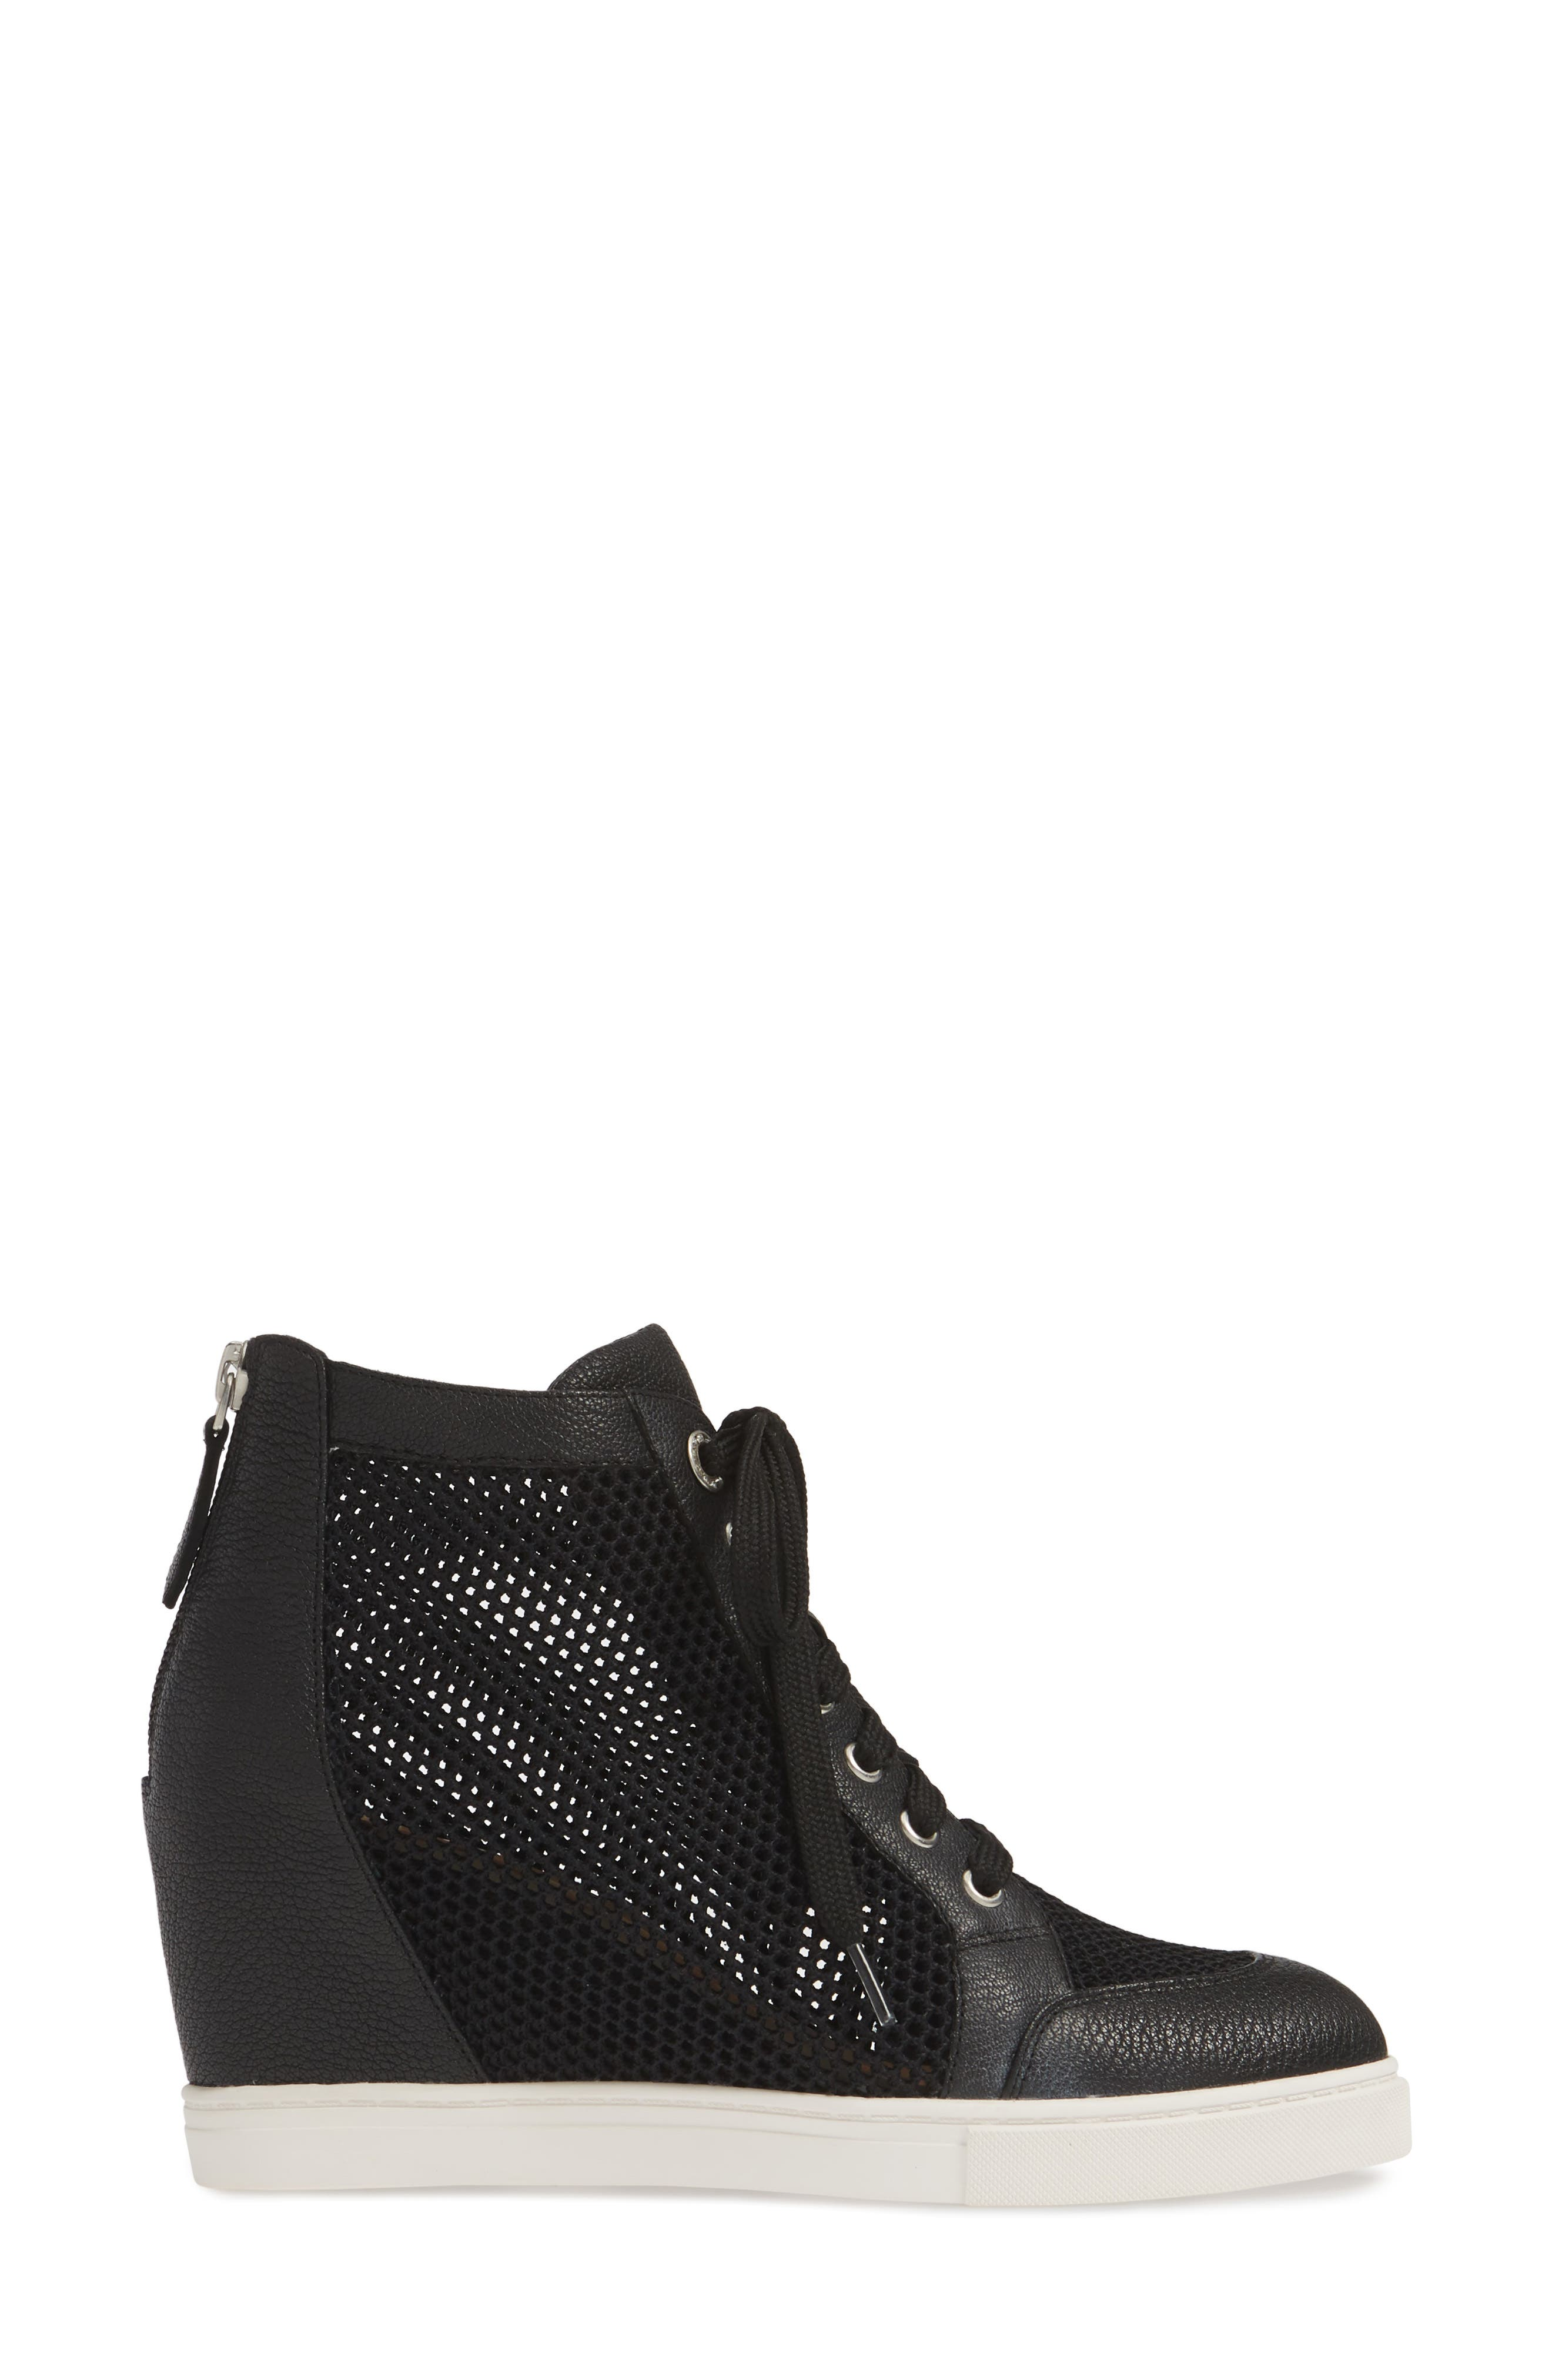 LINEA PAOLO, Finian Mesh Wedge Sneaker Bootie, Alternate thumbnail 3, color, BLACK LEATHER